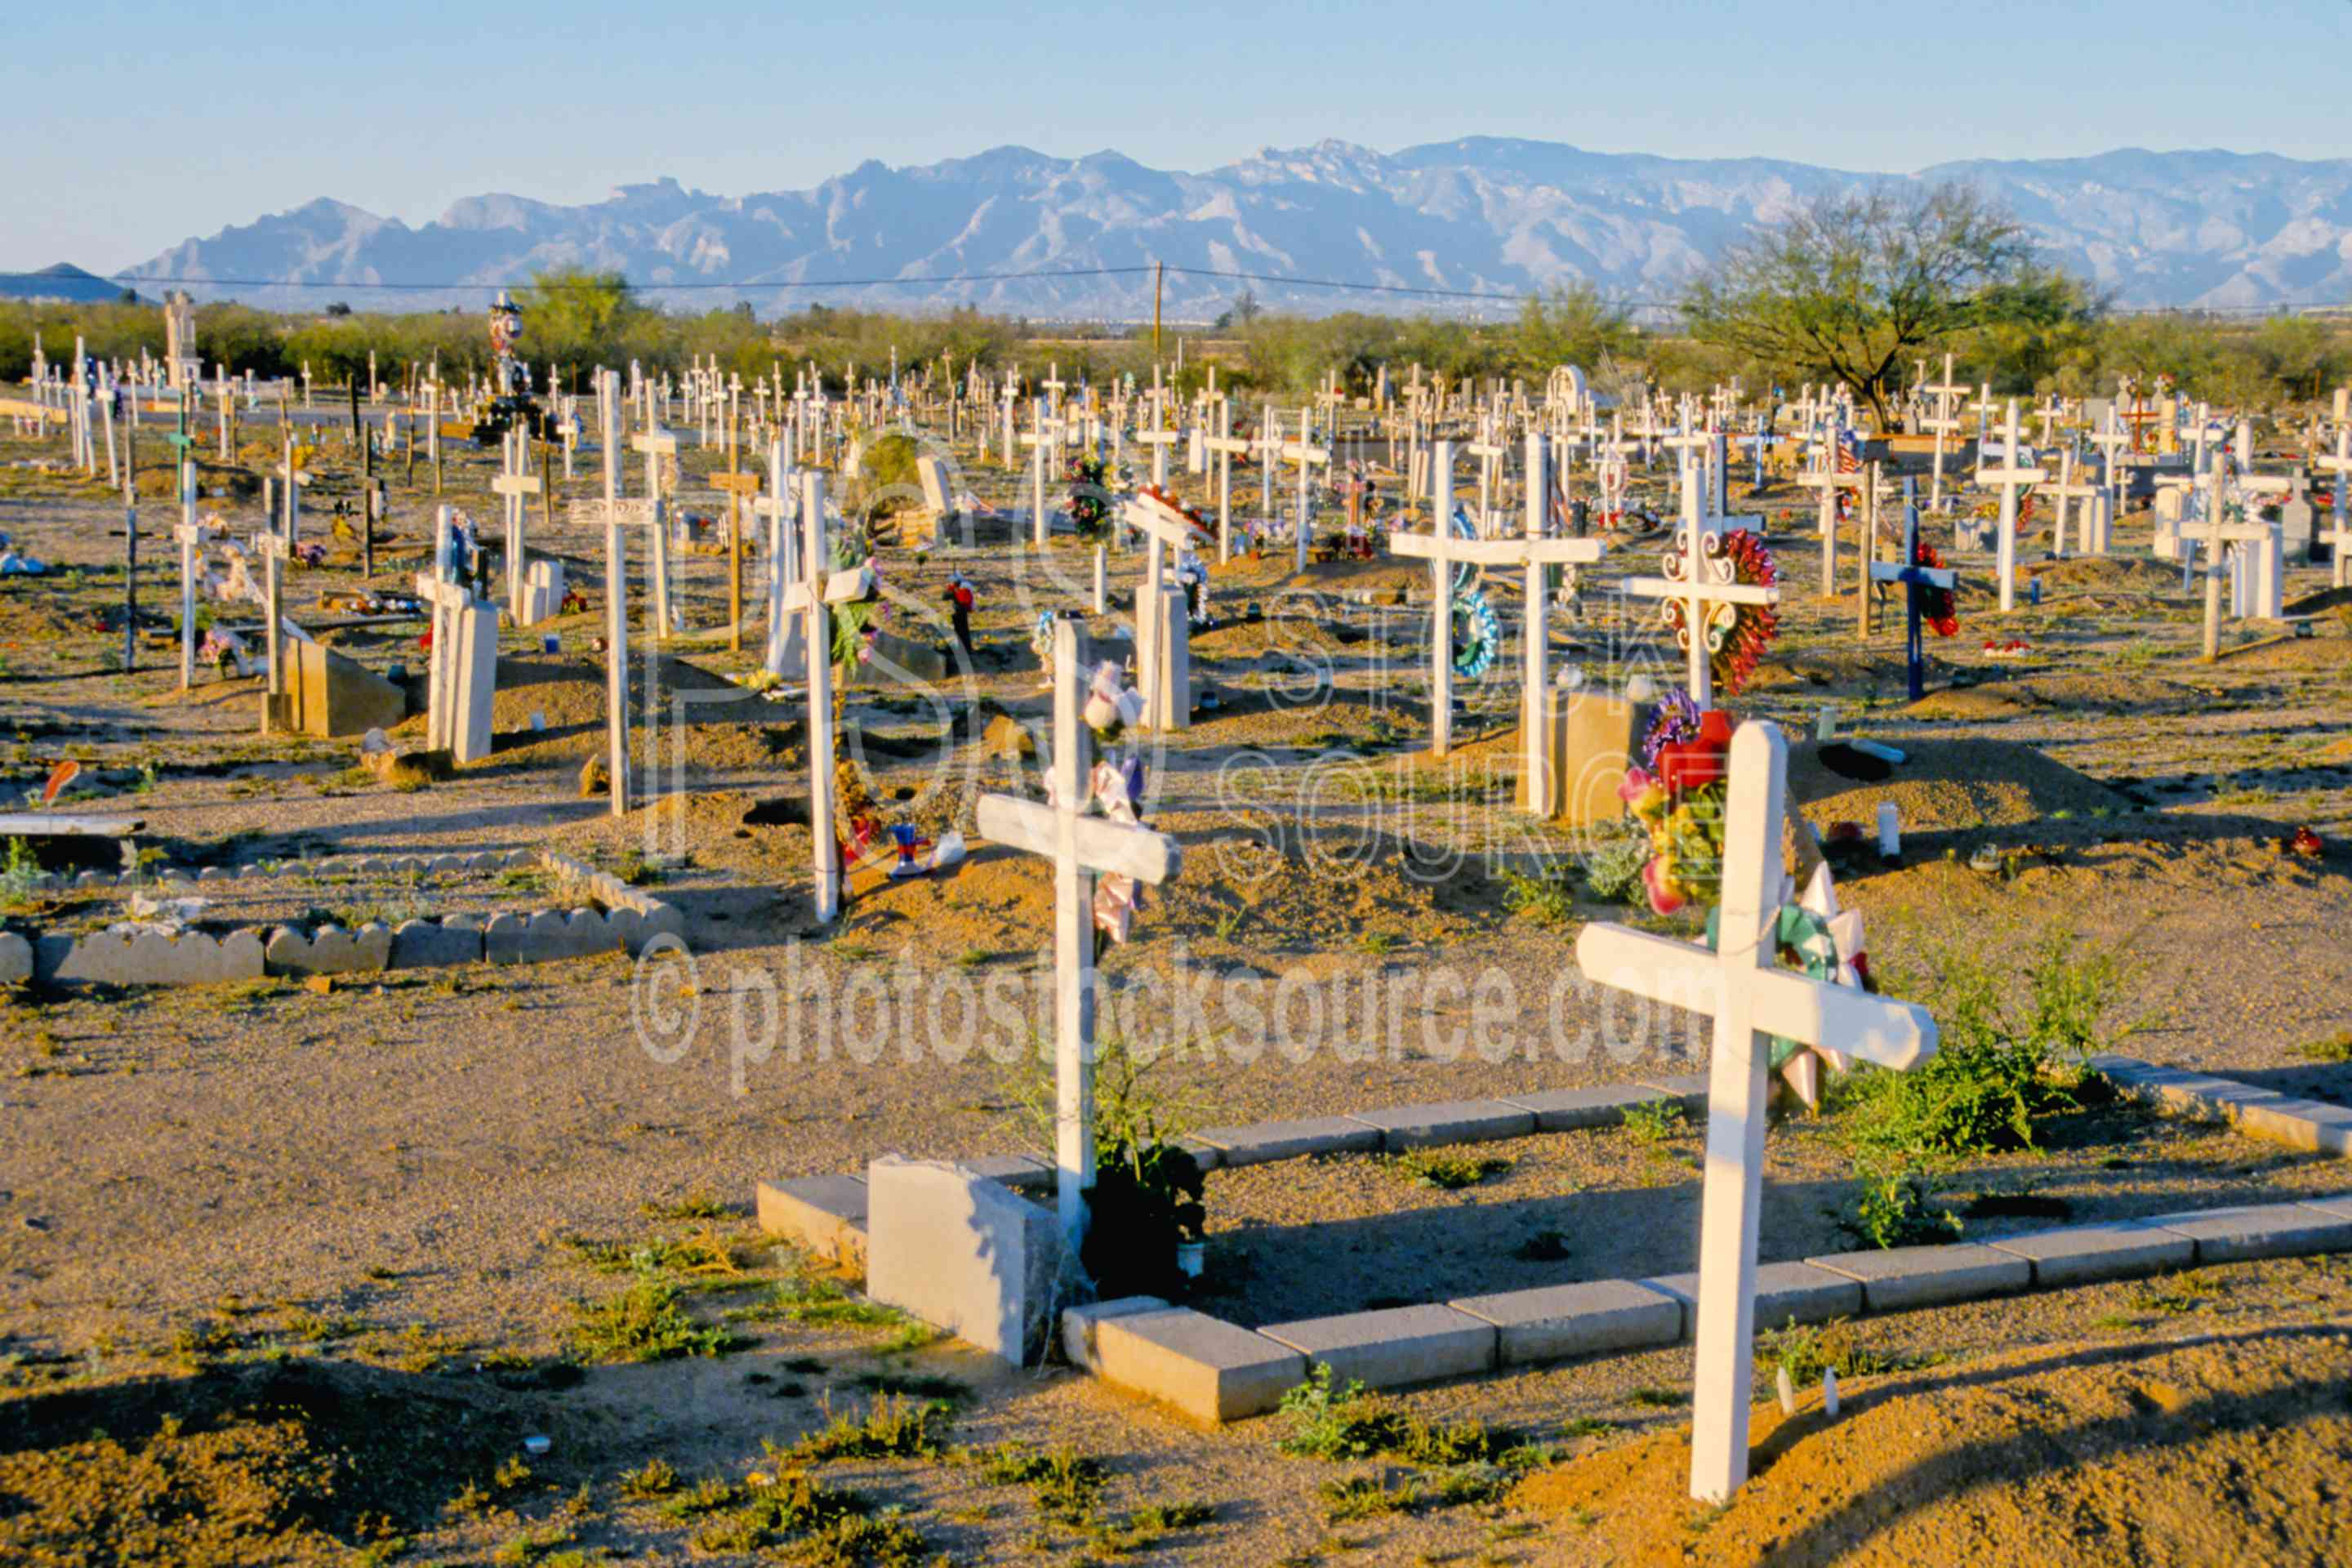 Mission Cemetery,grave,tomb,cross,burial,usas,cemetery,cemeteries